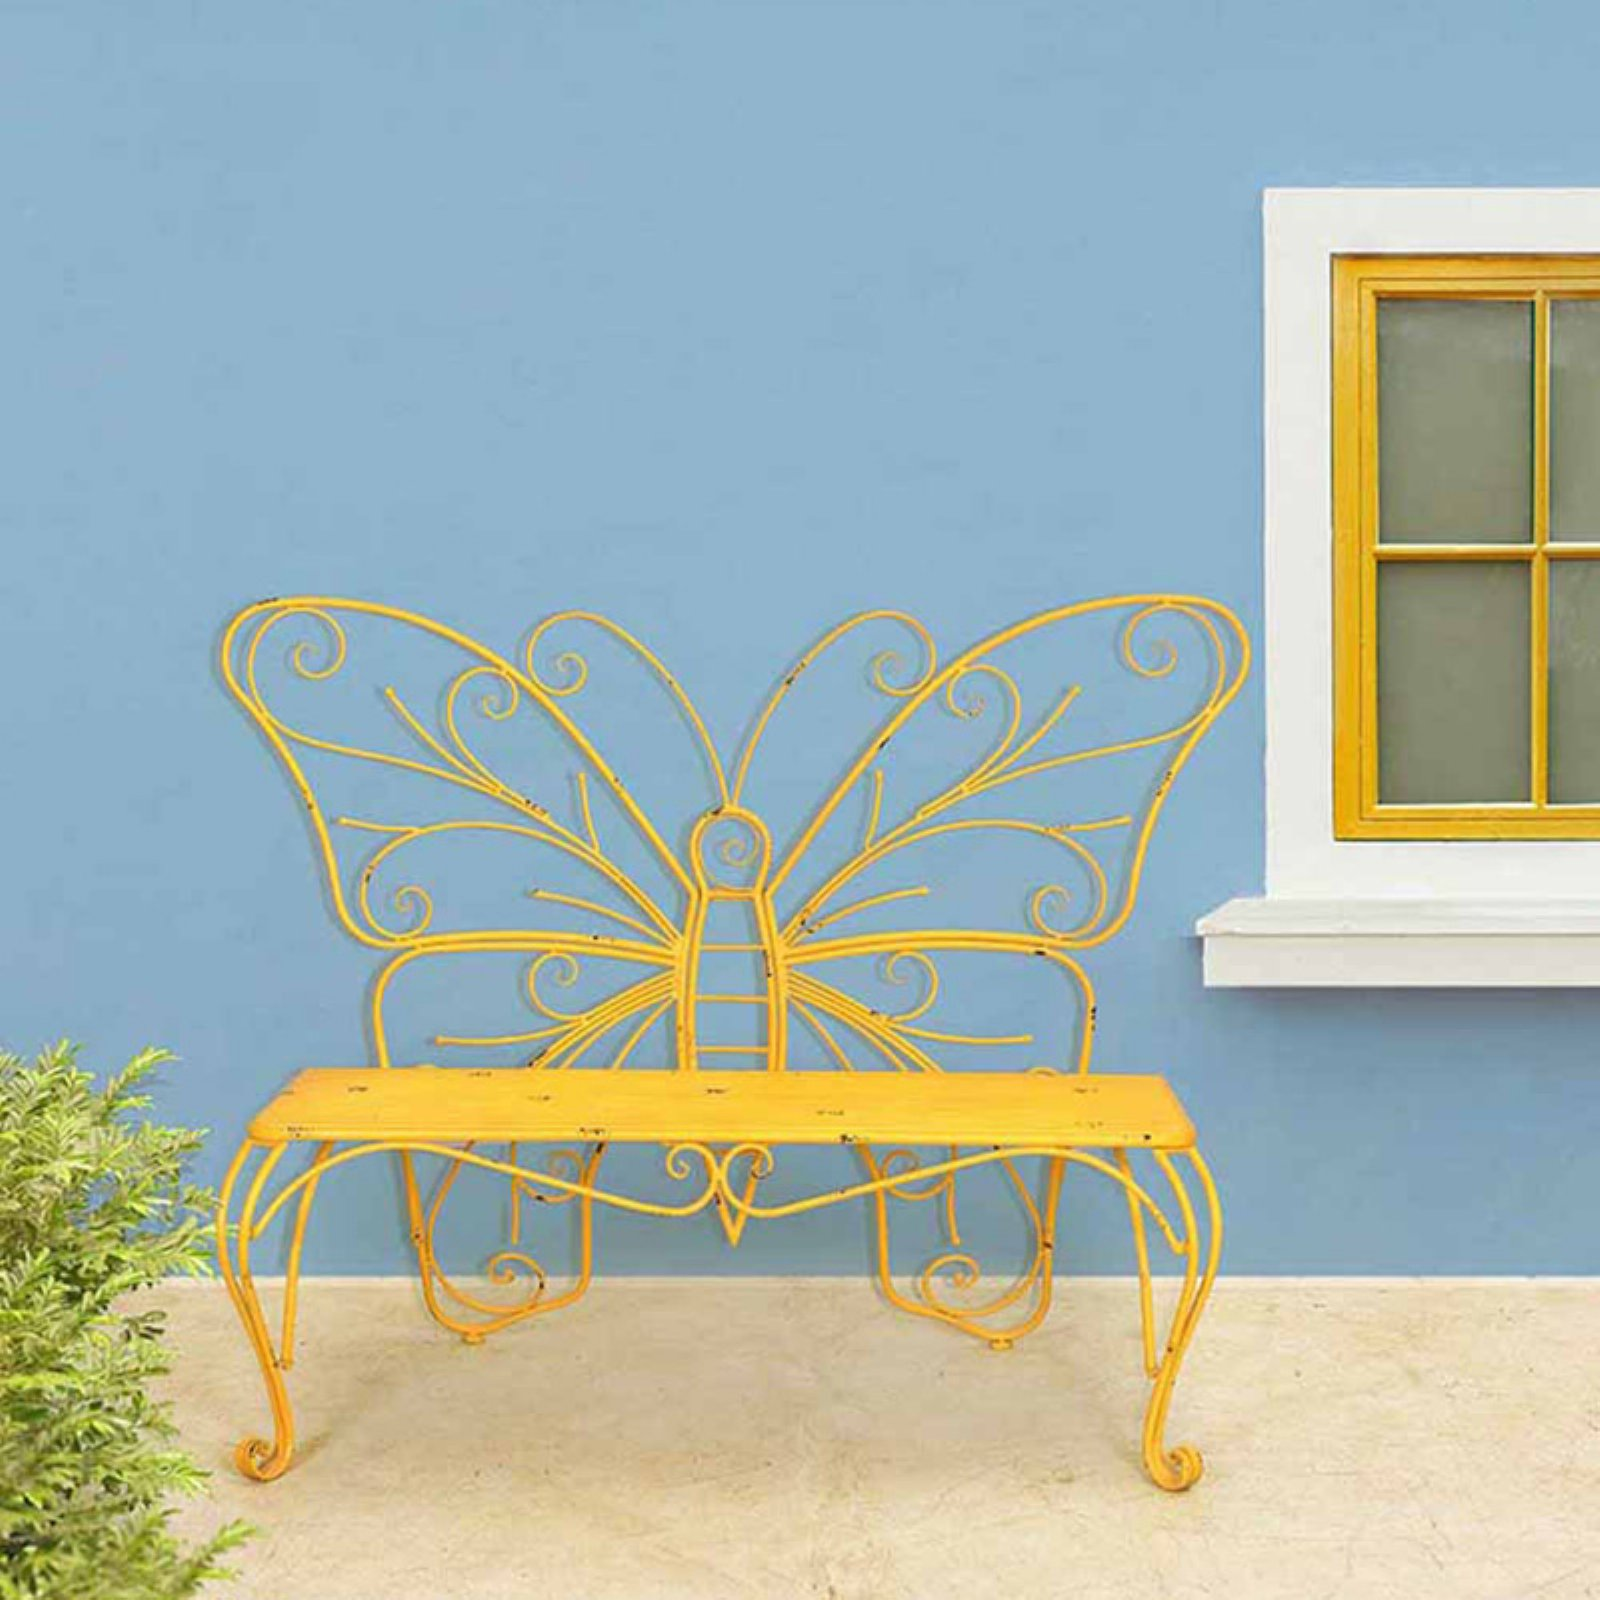 "Sunjoy 110208009 Yellow Butterfly Bench Made of Iron, 55.75"" x 23.5"" x 42.25"""